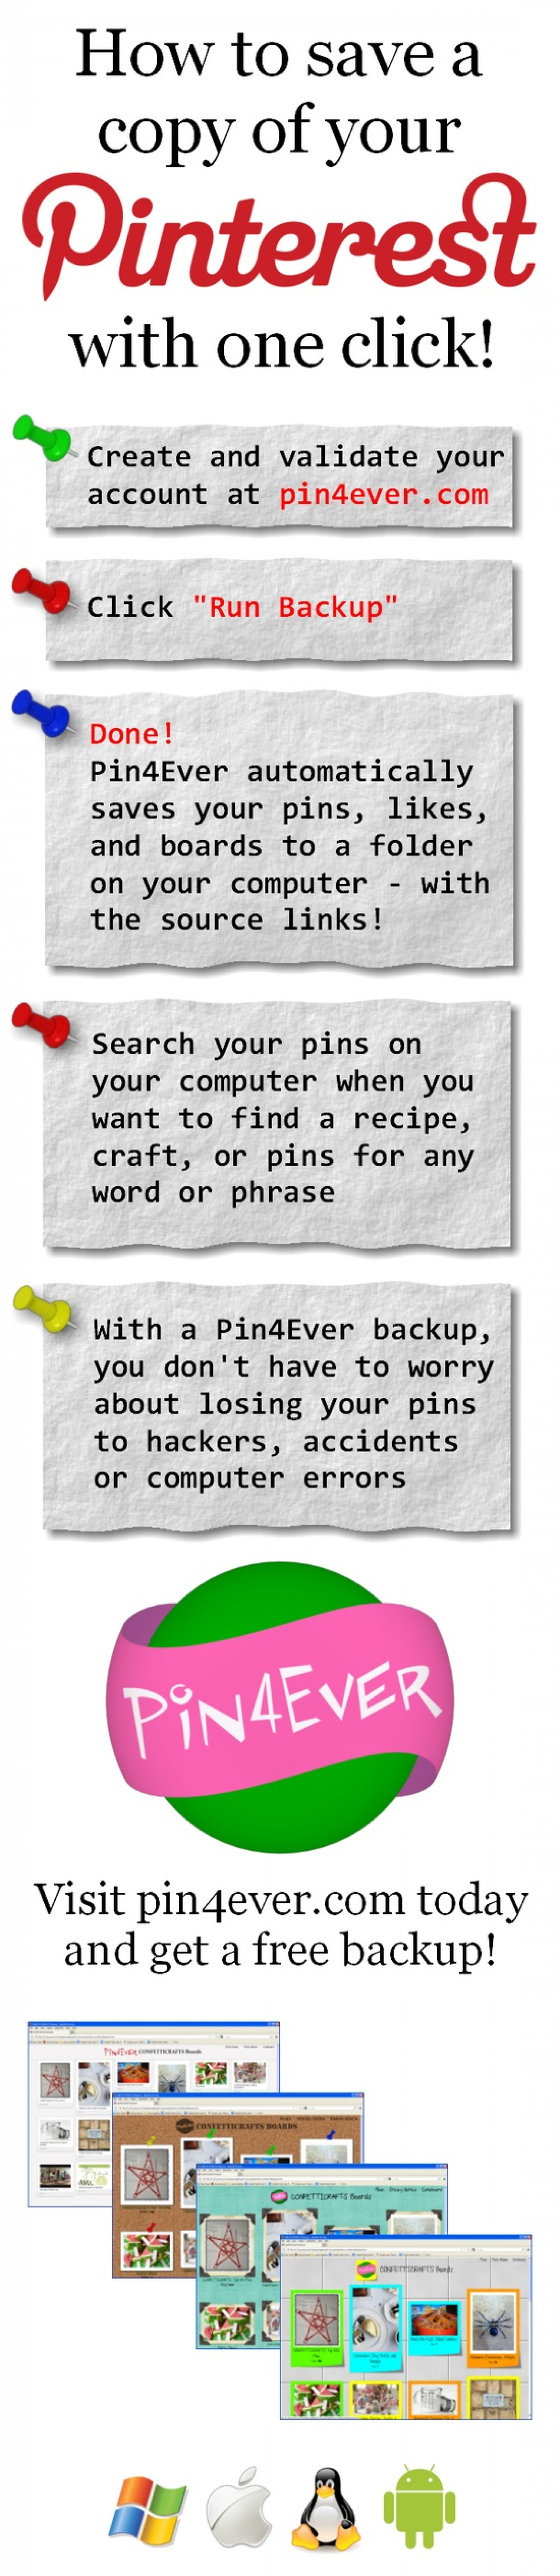 Pin4Ever Pinterest Account Backup Service Infographic